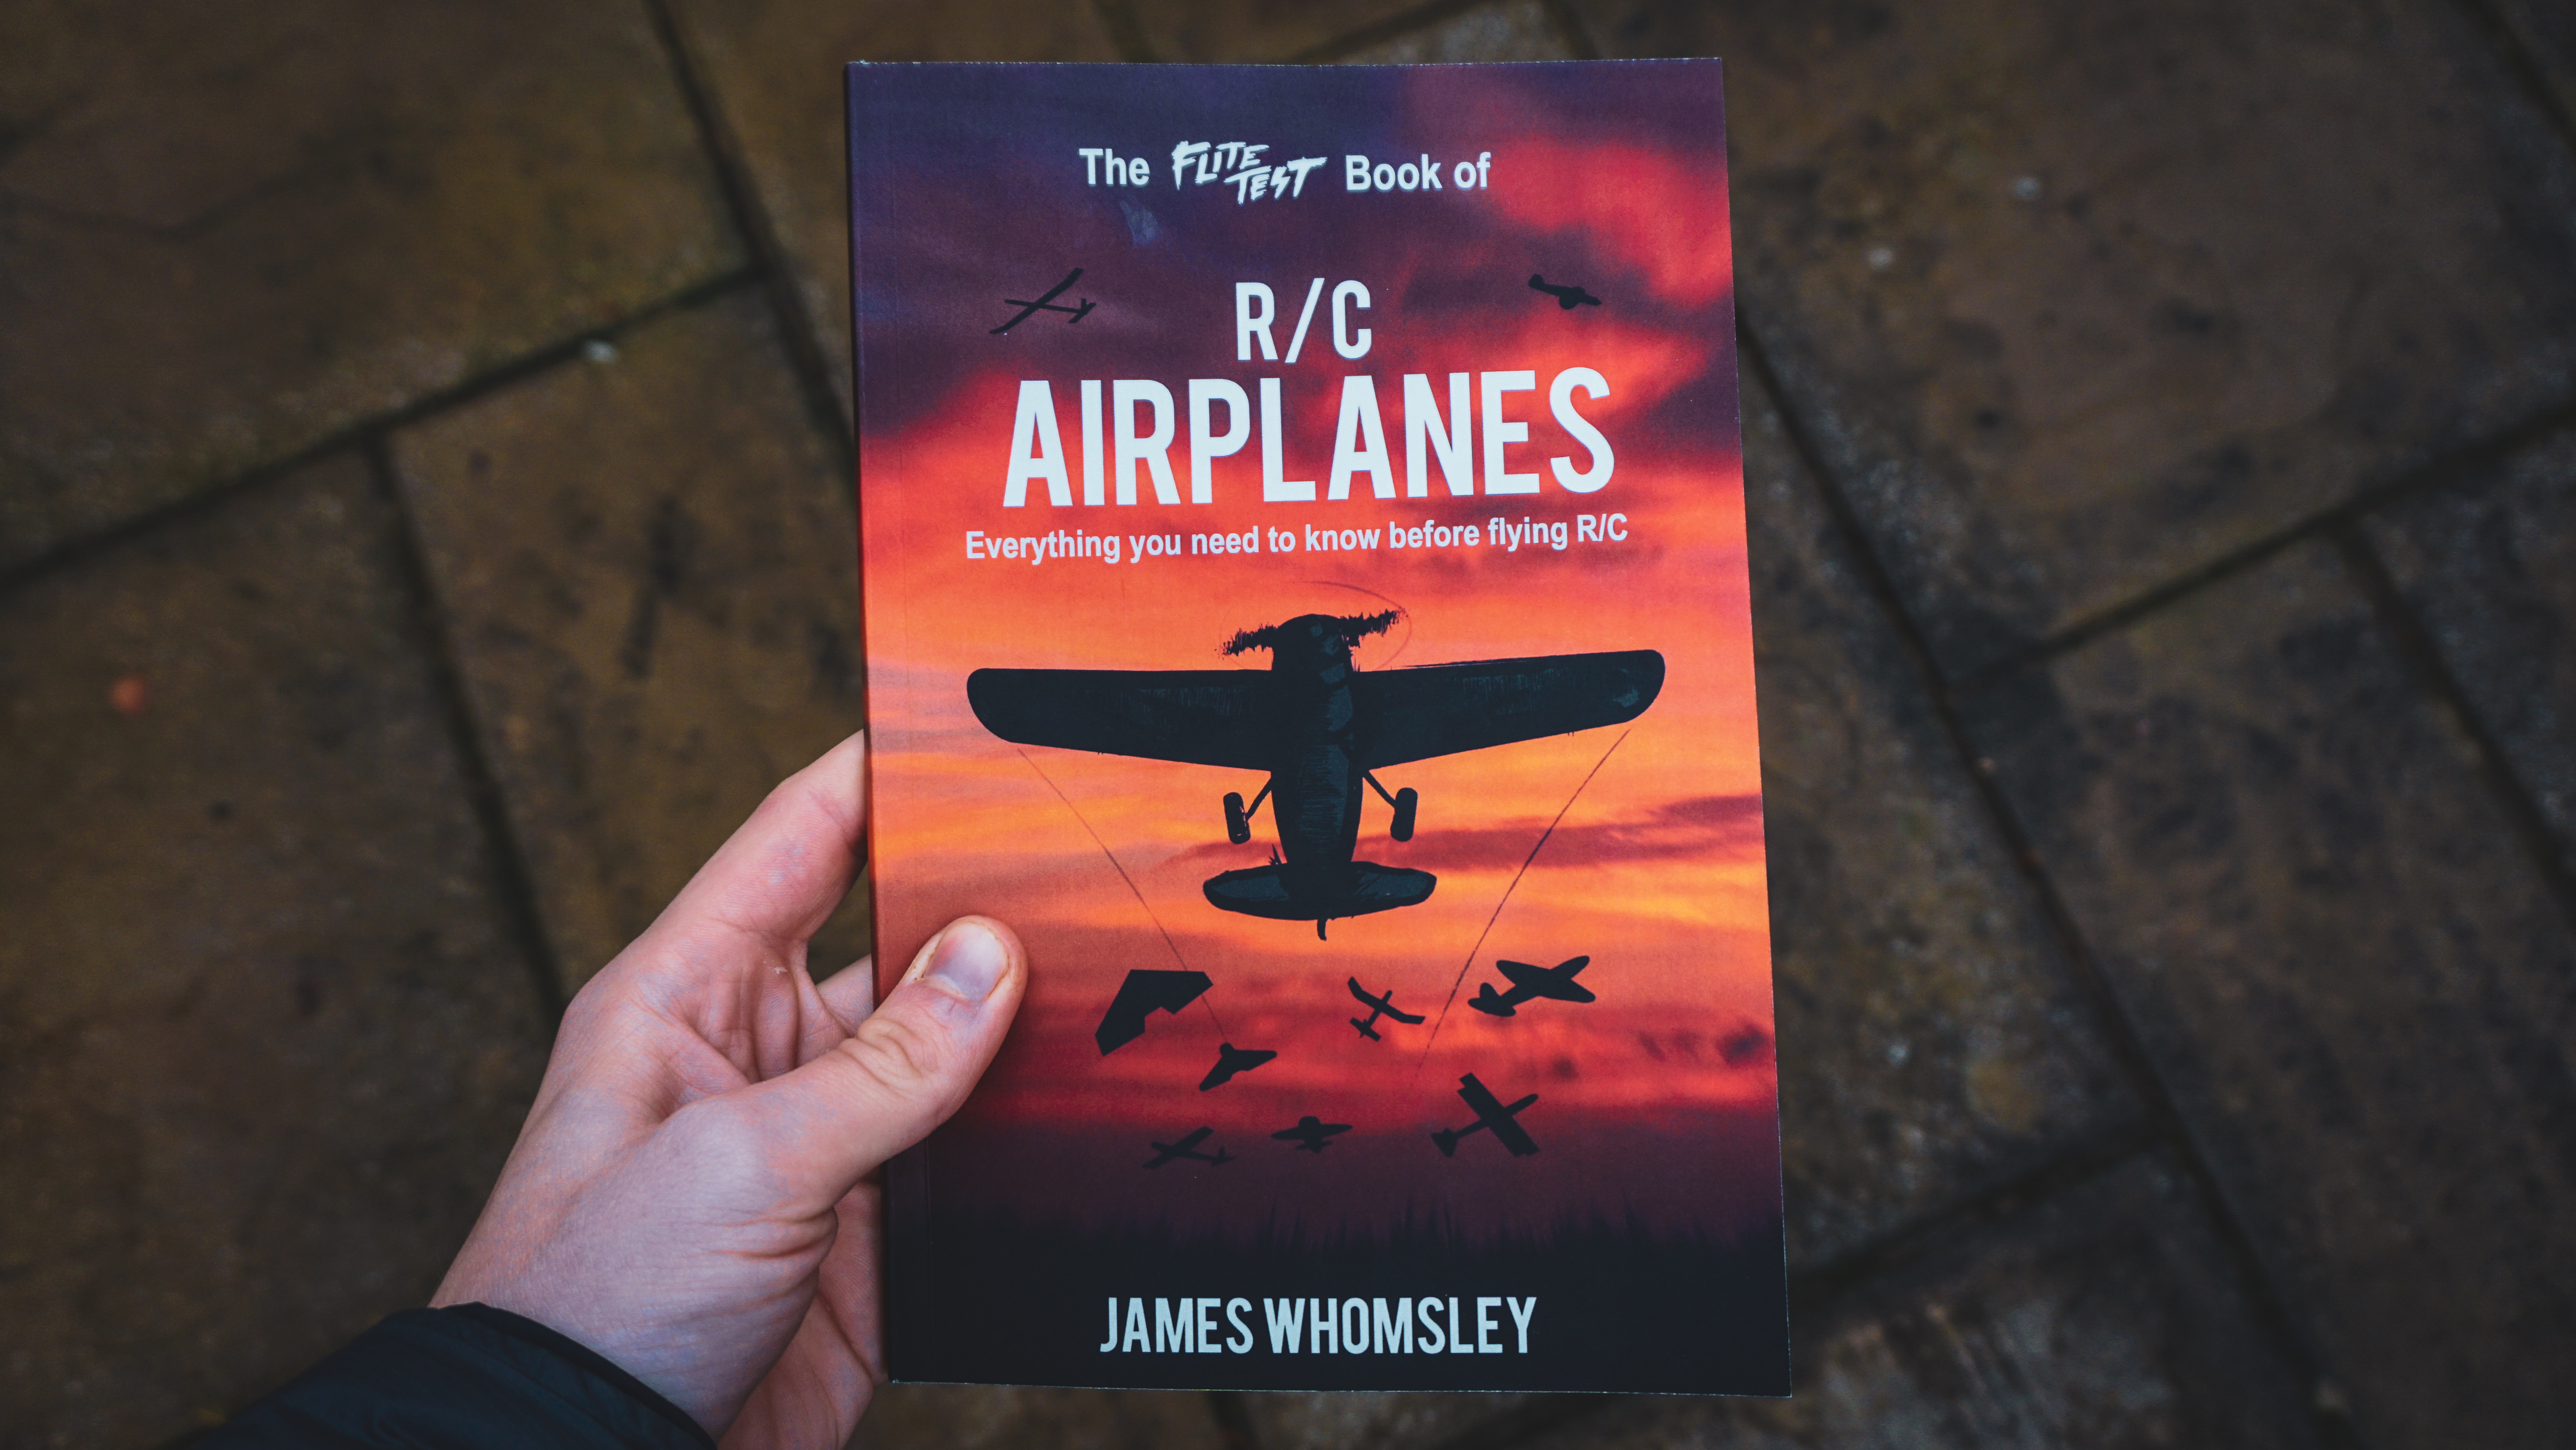 ... to announce that we've opened another avenue to help individuals get  started through a brand new publication, 'The Flite Test Book of R/C  Airplanes'.